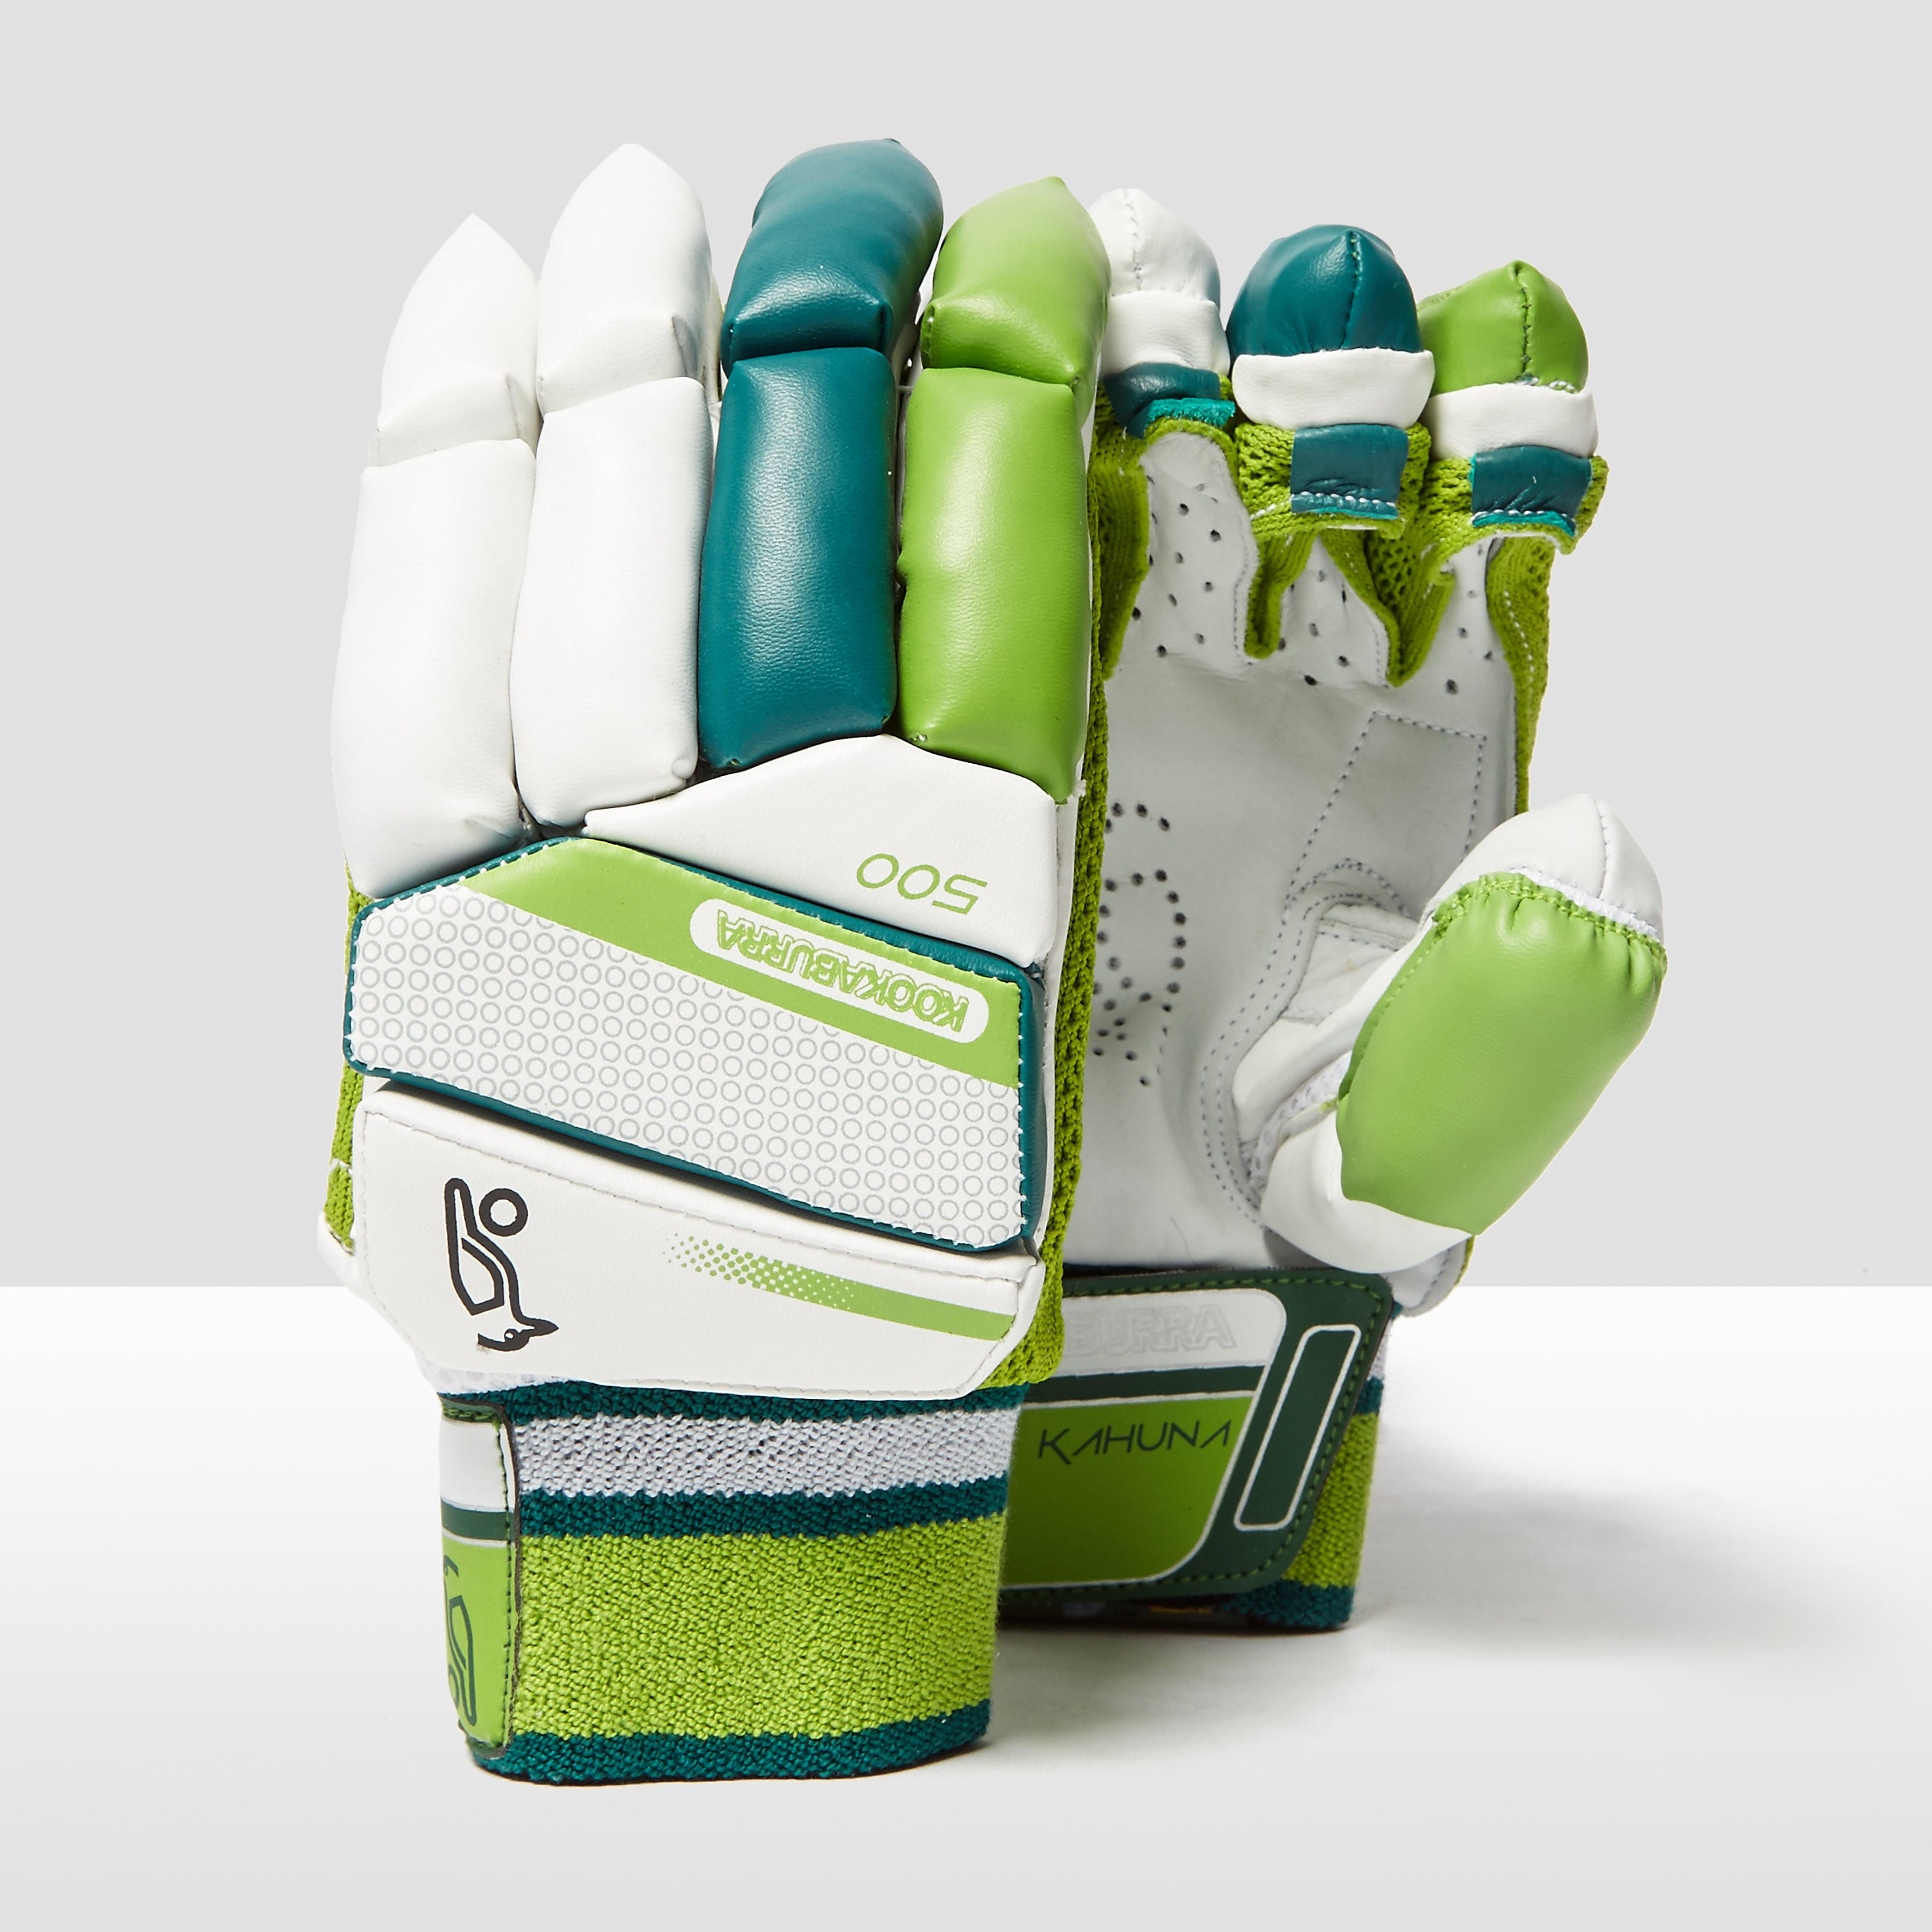 Kookaburra Kahuna 500 Junior Batting Gloves